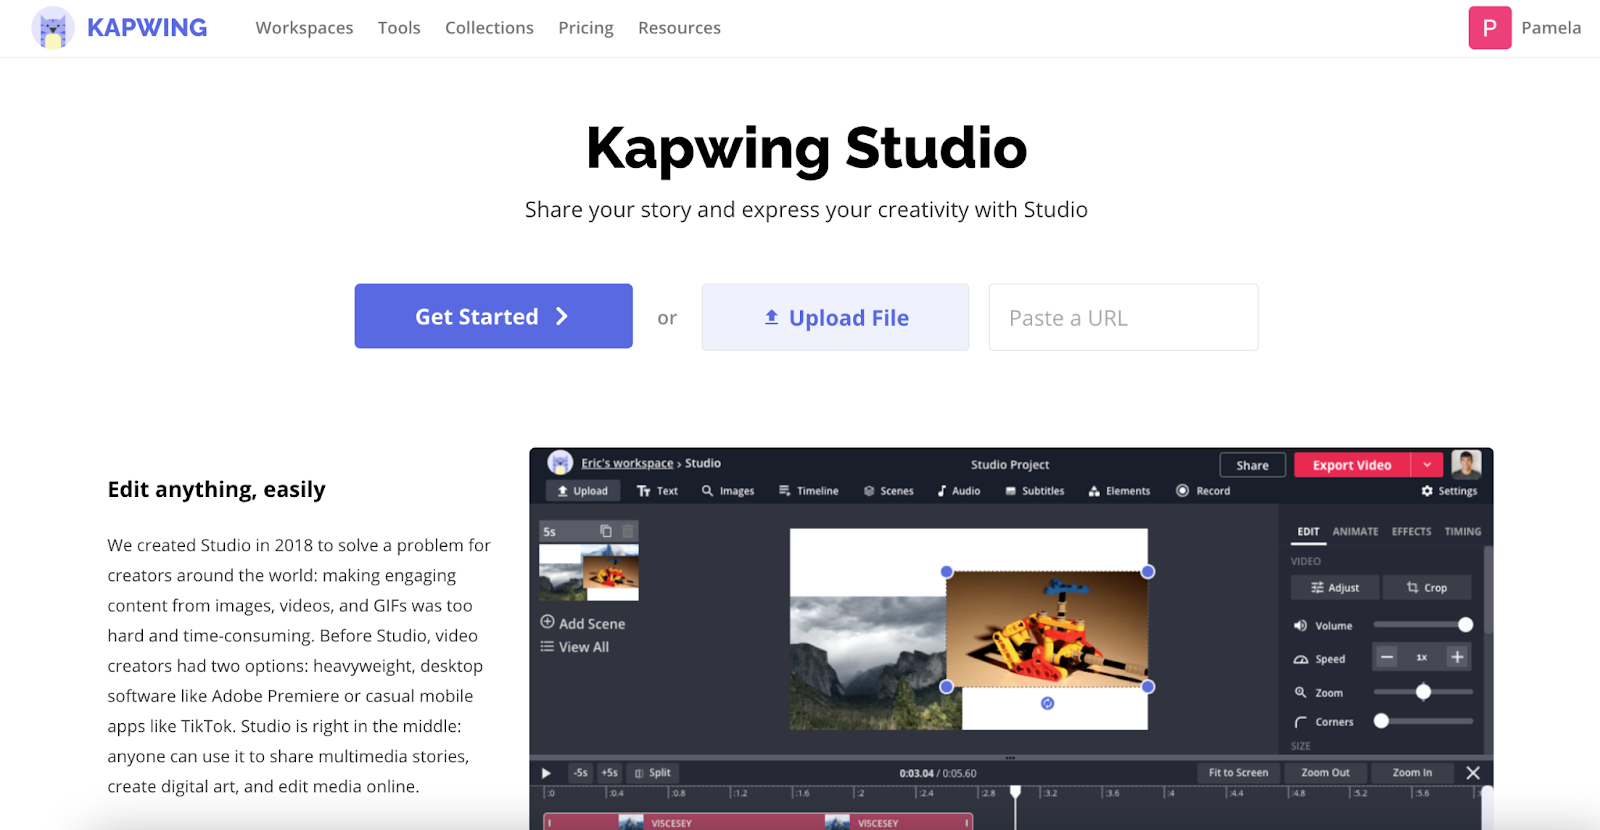 Kapwing Studio Homepage with a Get Started, Upload, and URL paste box